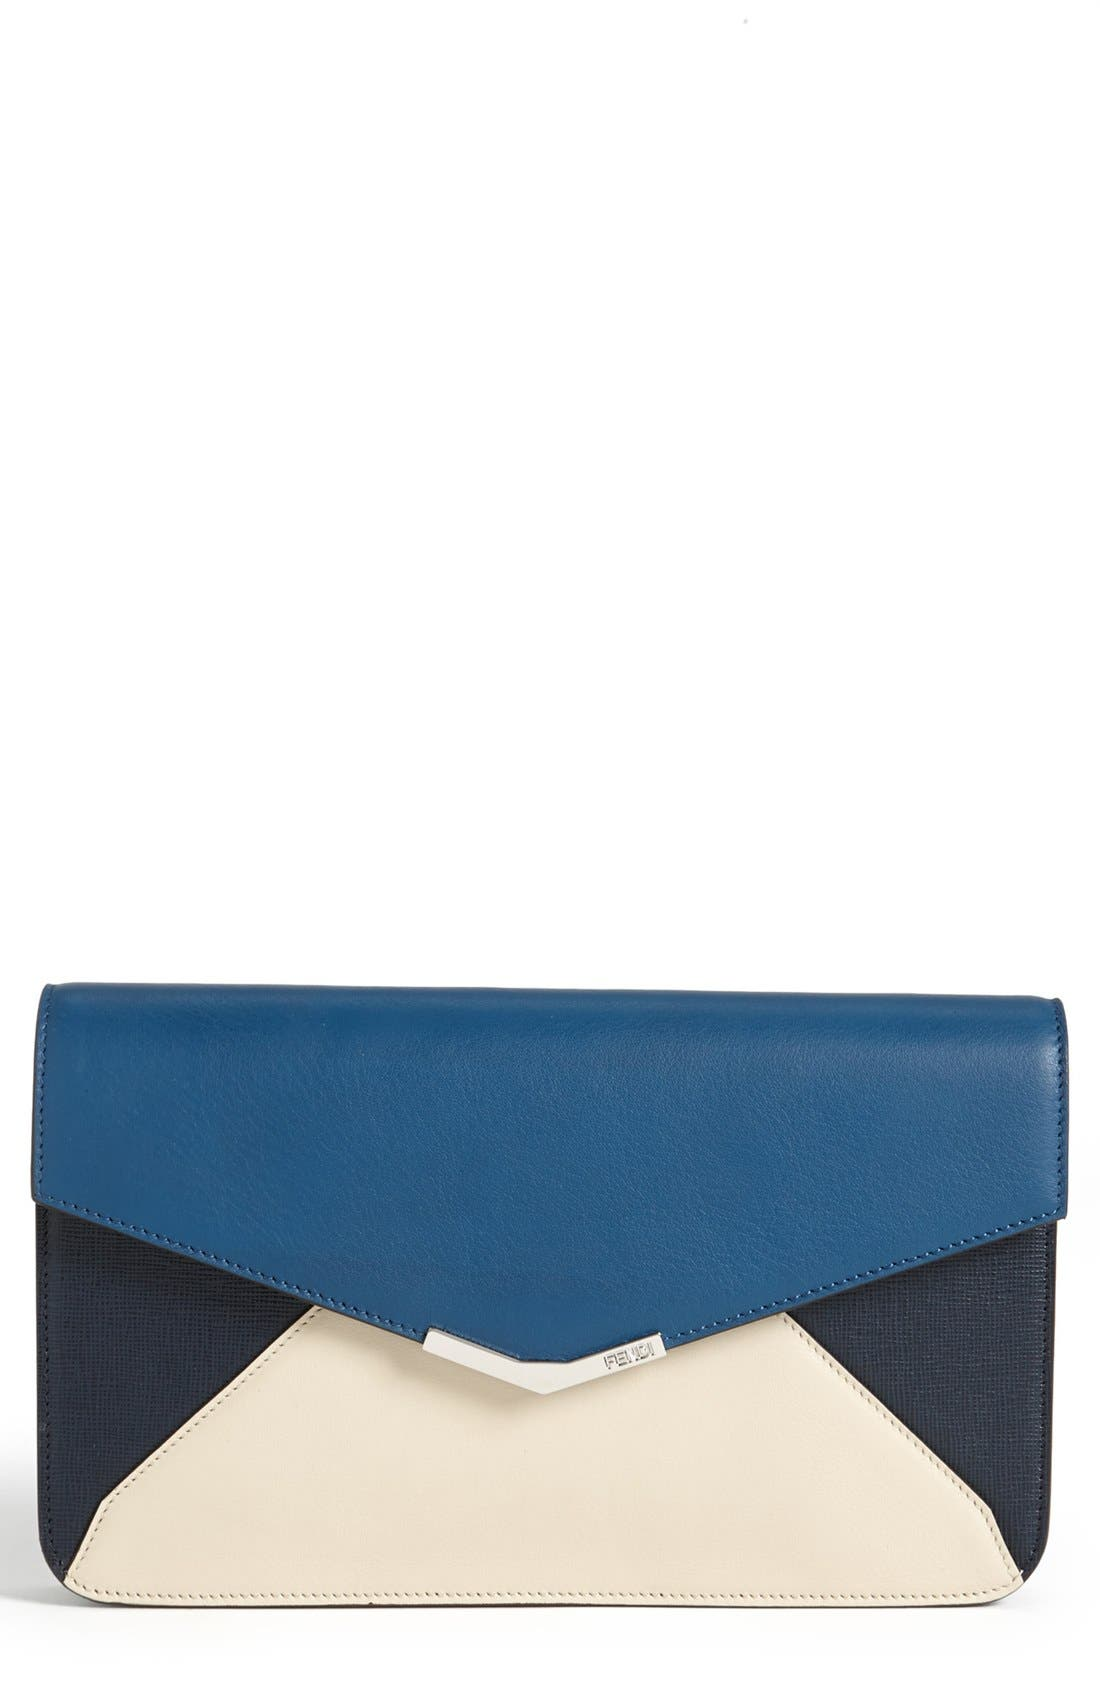 Alternate Image 1 Selected - Fendi 'Petit 2Jours' Clutch